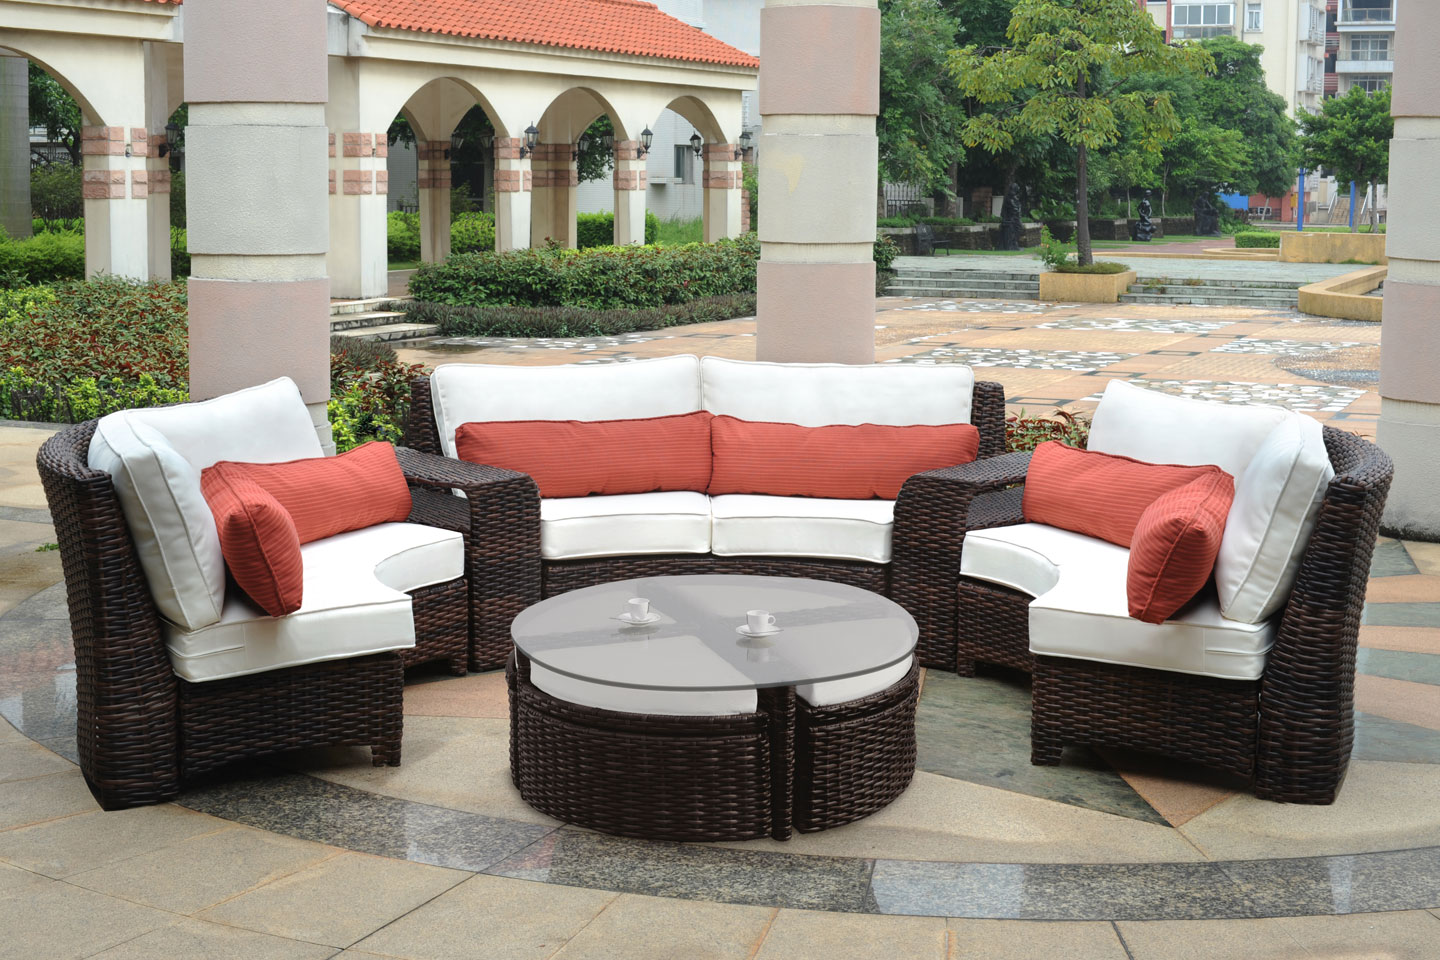 Fiji Curved Outdoor Resin Wicker Patio Sectional – ClubFurniture